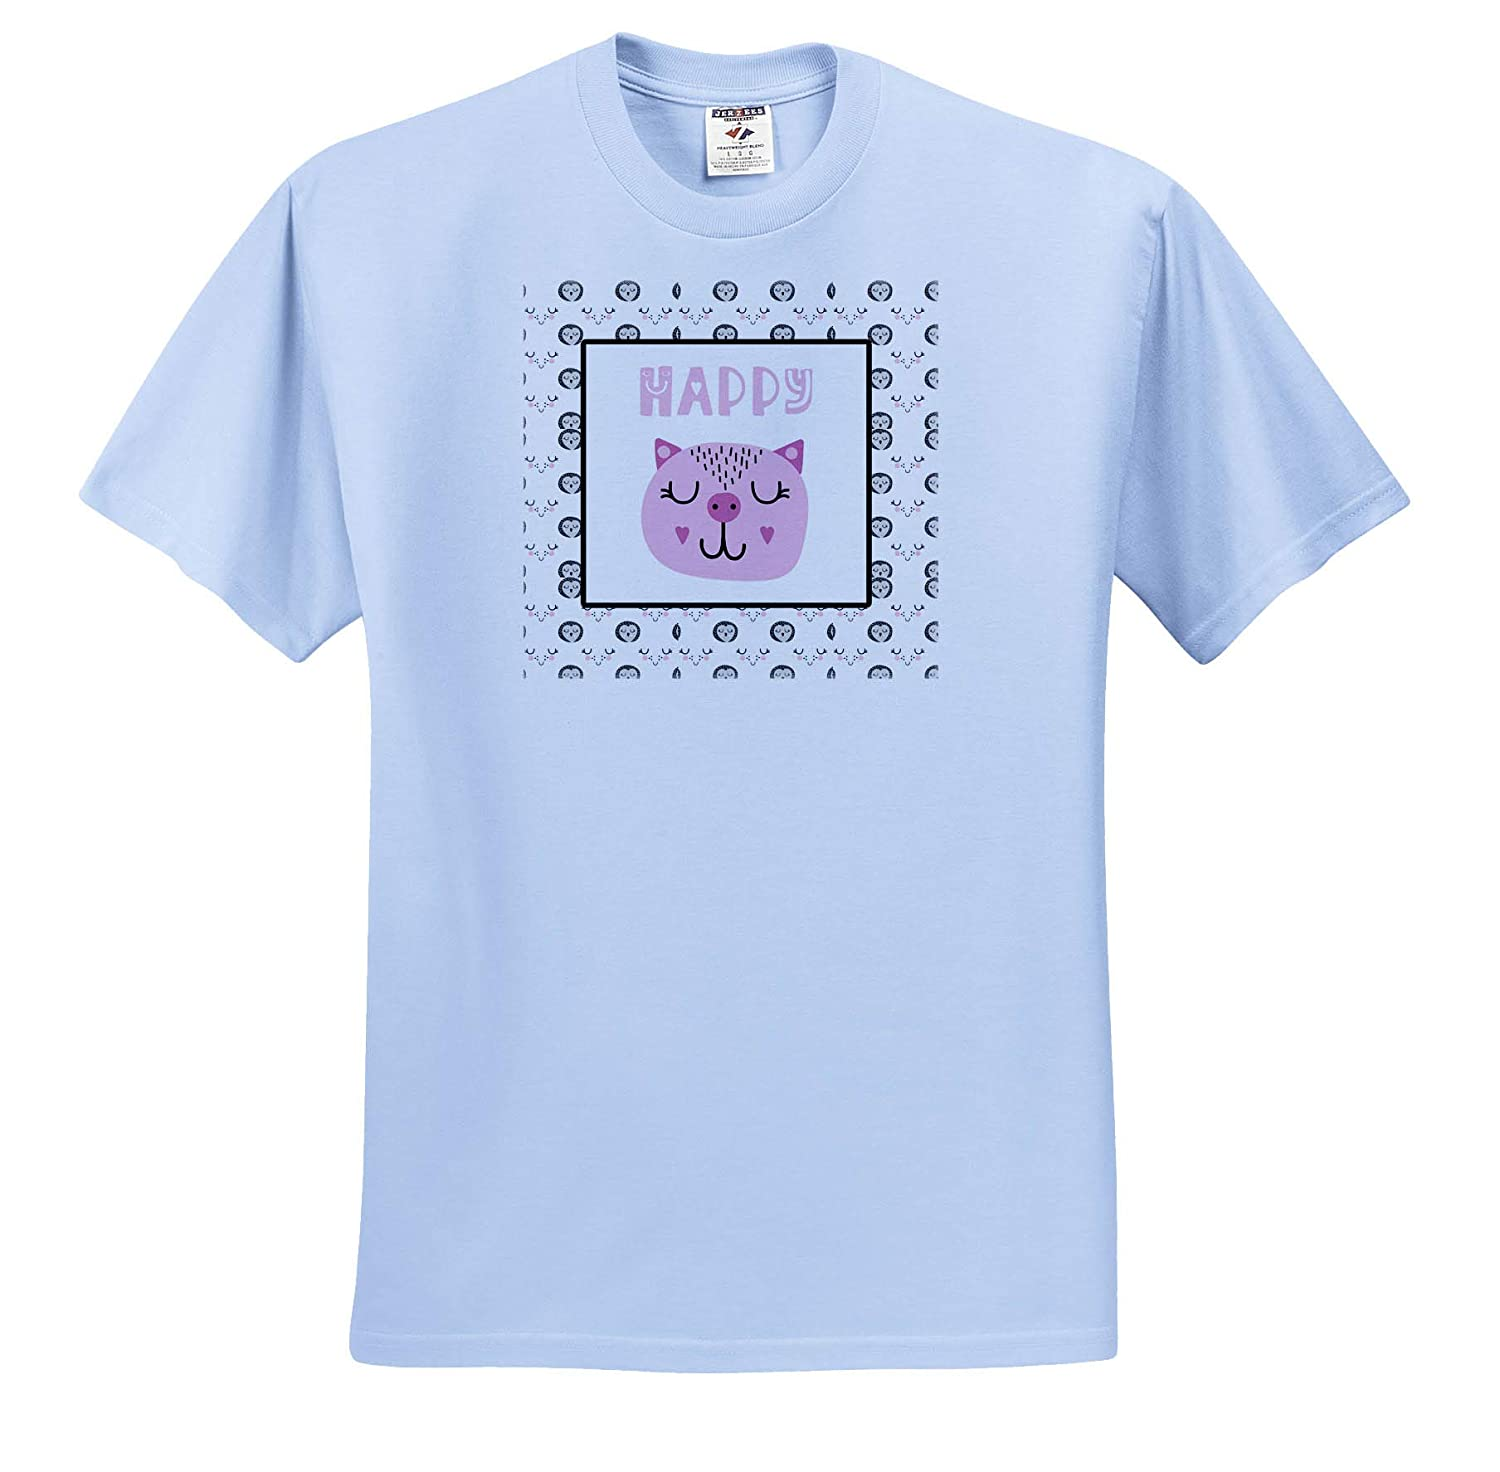 3dRose Uta Naumann Sayings and Typography Pink Animal Illustration and Pattern with Cat Happy T-Shirts